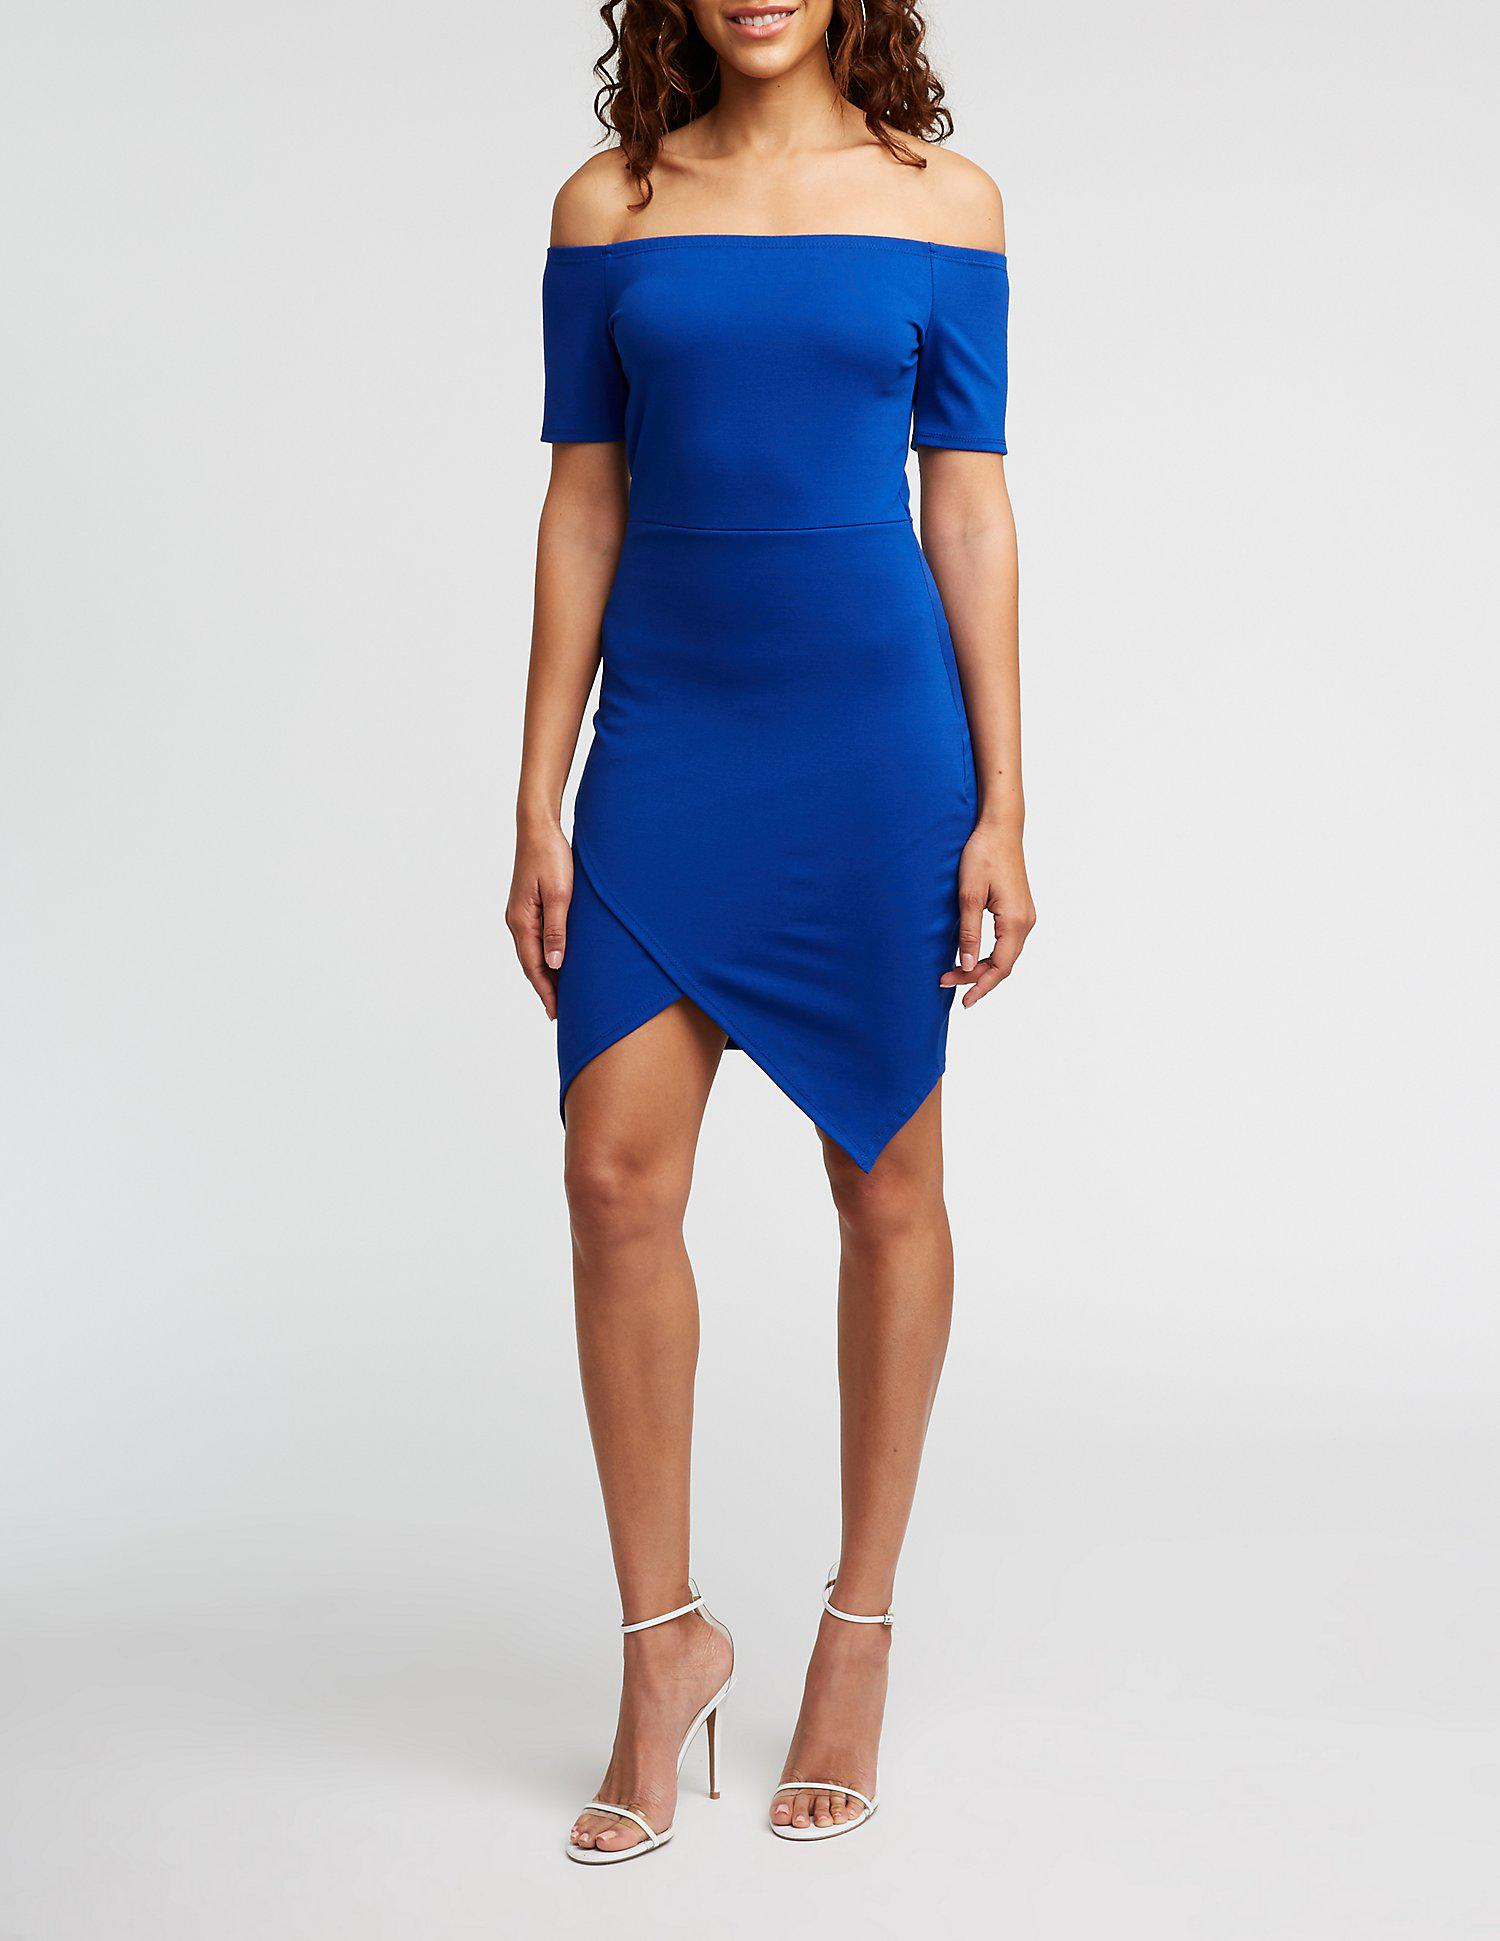 07834752d9a Lyst - Charlotte Russe Off The Shoulder Bodycon Dress in Blue